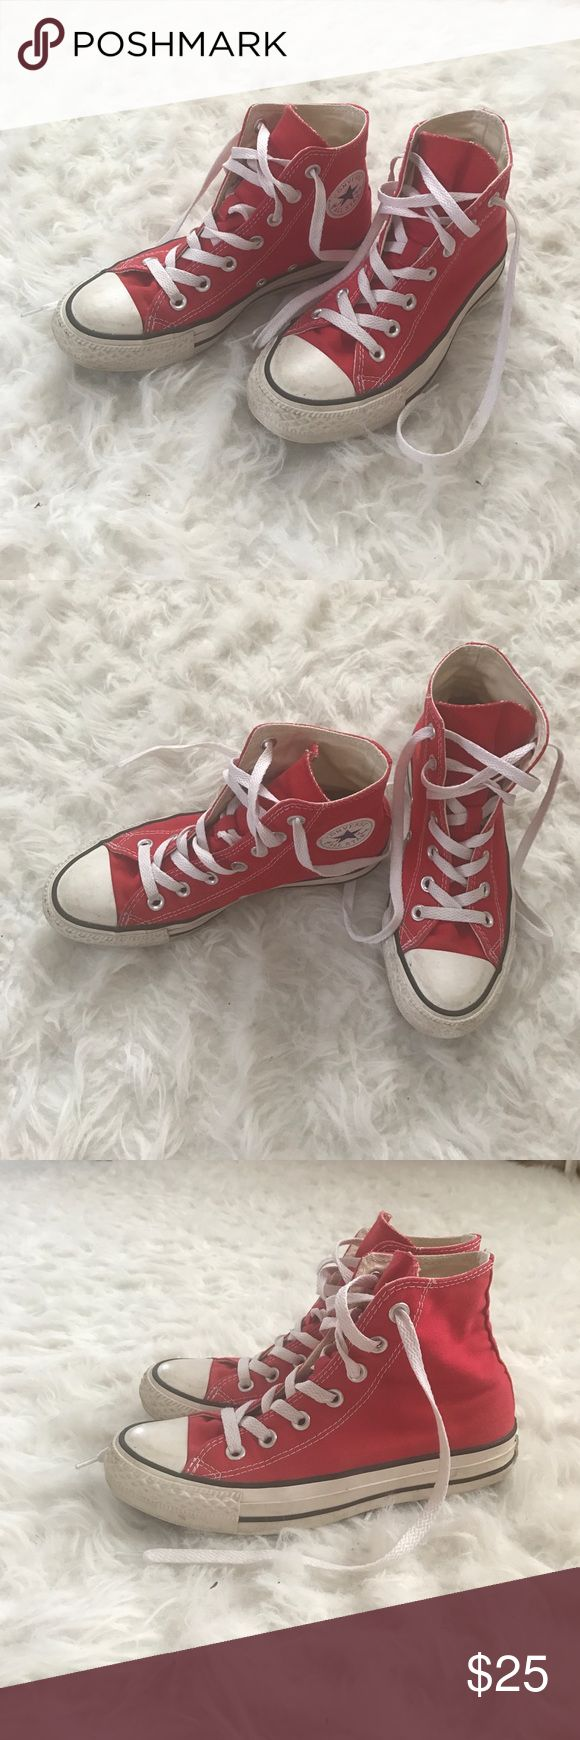 Red high top sneaker shoes White laces, Logo patch detail, very comfortable, size 4 in men's Converse Shoes Sneakers